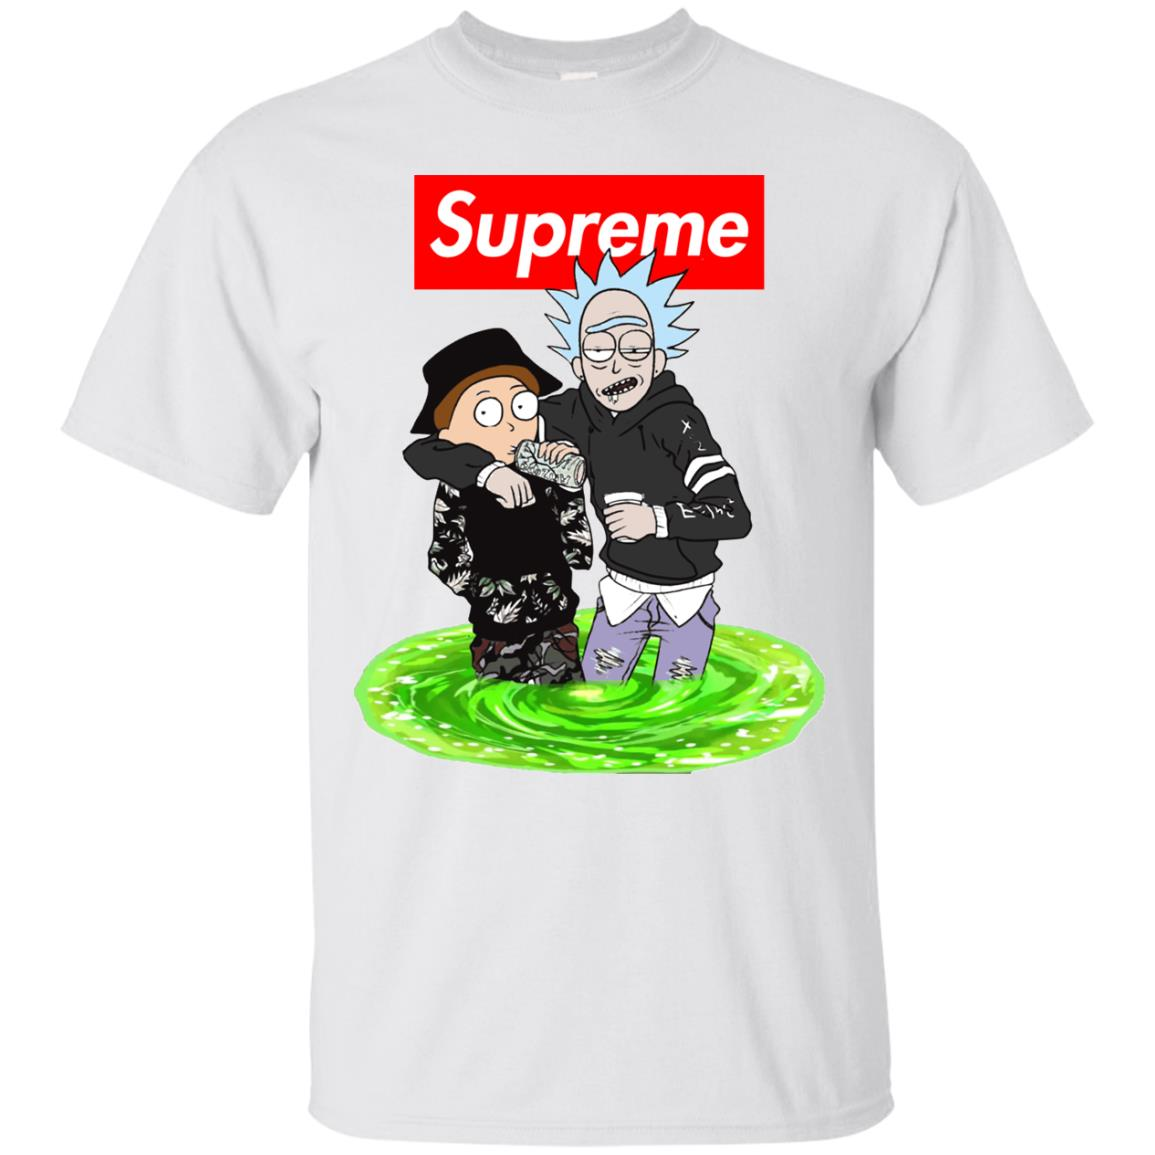 image 2739 - Supreme style Rick and Morty shirt & sweater